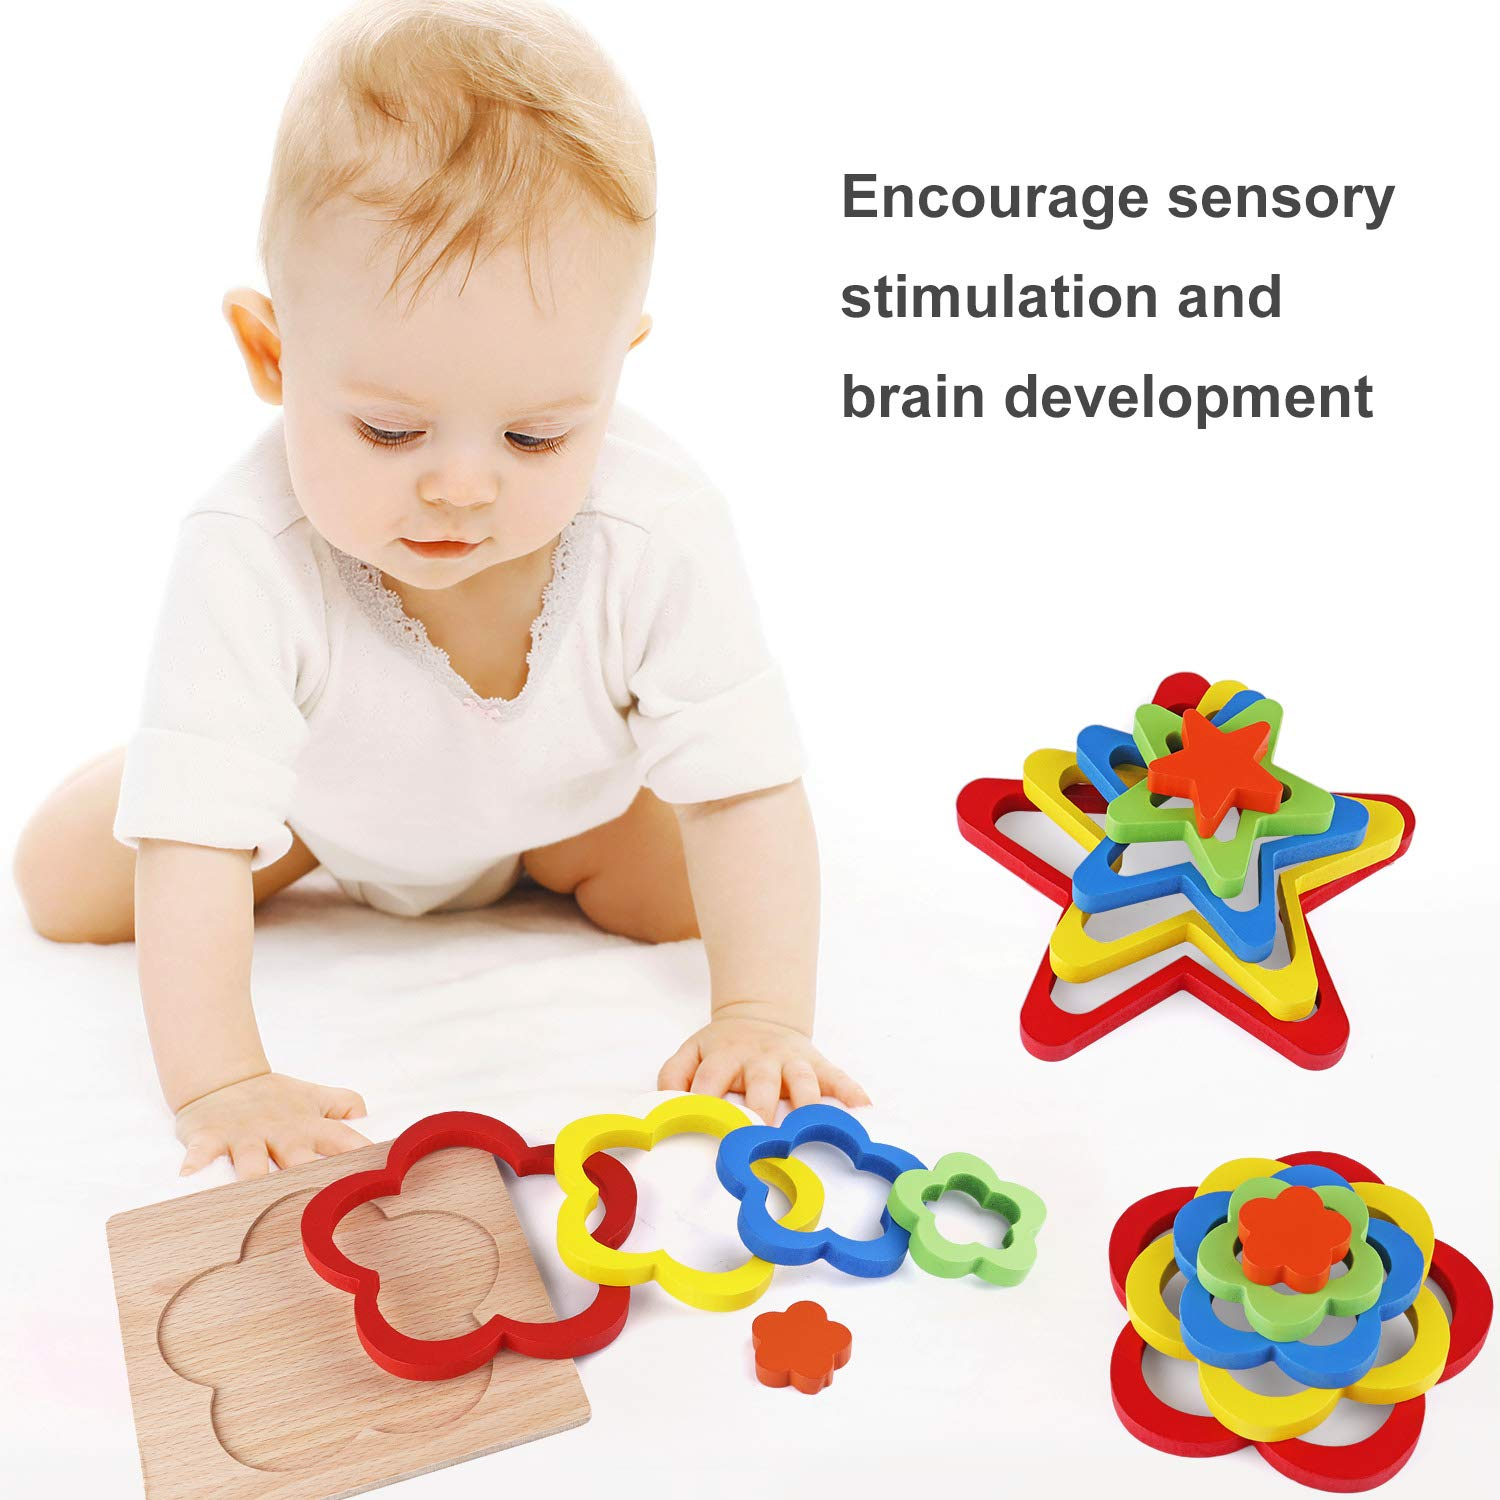 Tinabless Wooden Jigsaw Puzzles for Toddlers Wooden Stacking Game Learning Toy Geometry Building Blocks Educational Toys for Kids Baby Toddlers